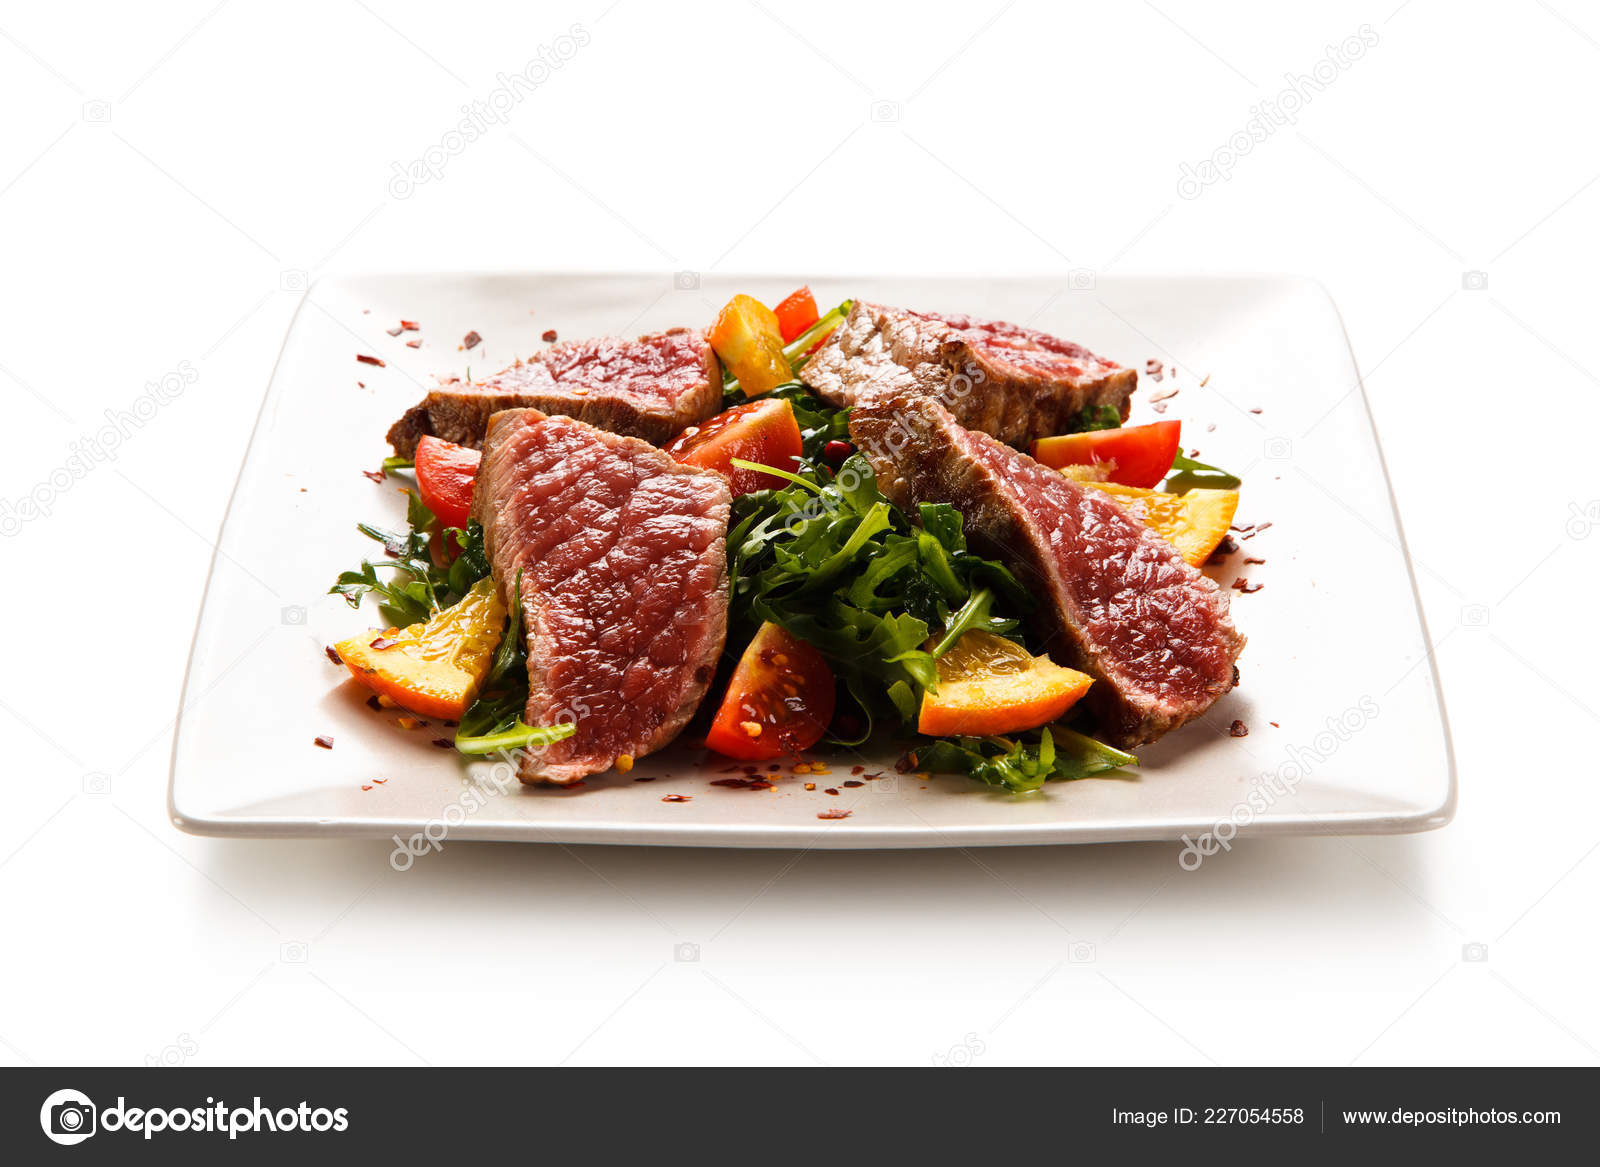 Sliced Beef Steak Salad White Plate Stock Photo C Gbh007 227054558